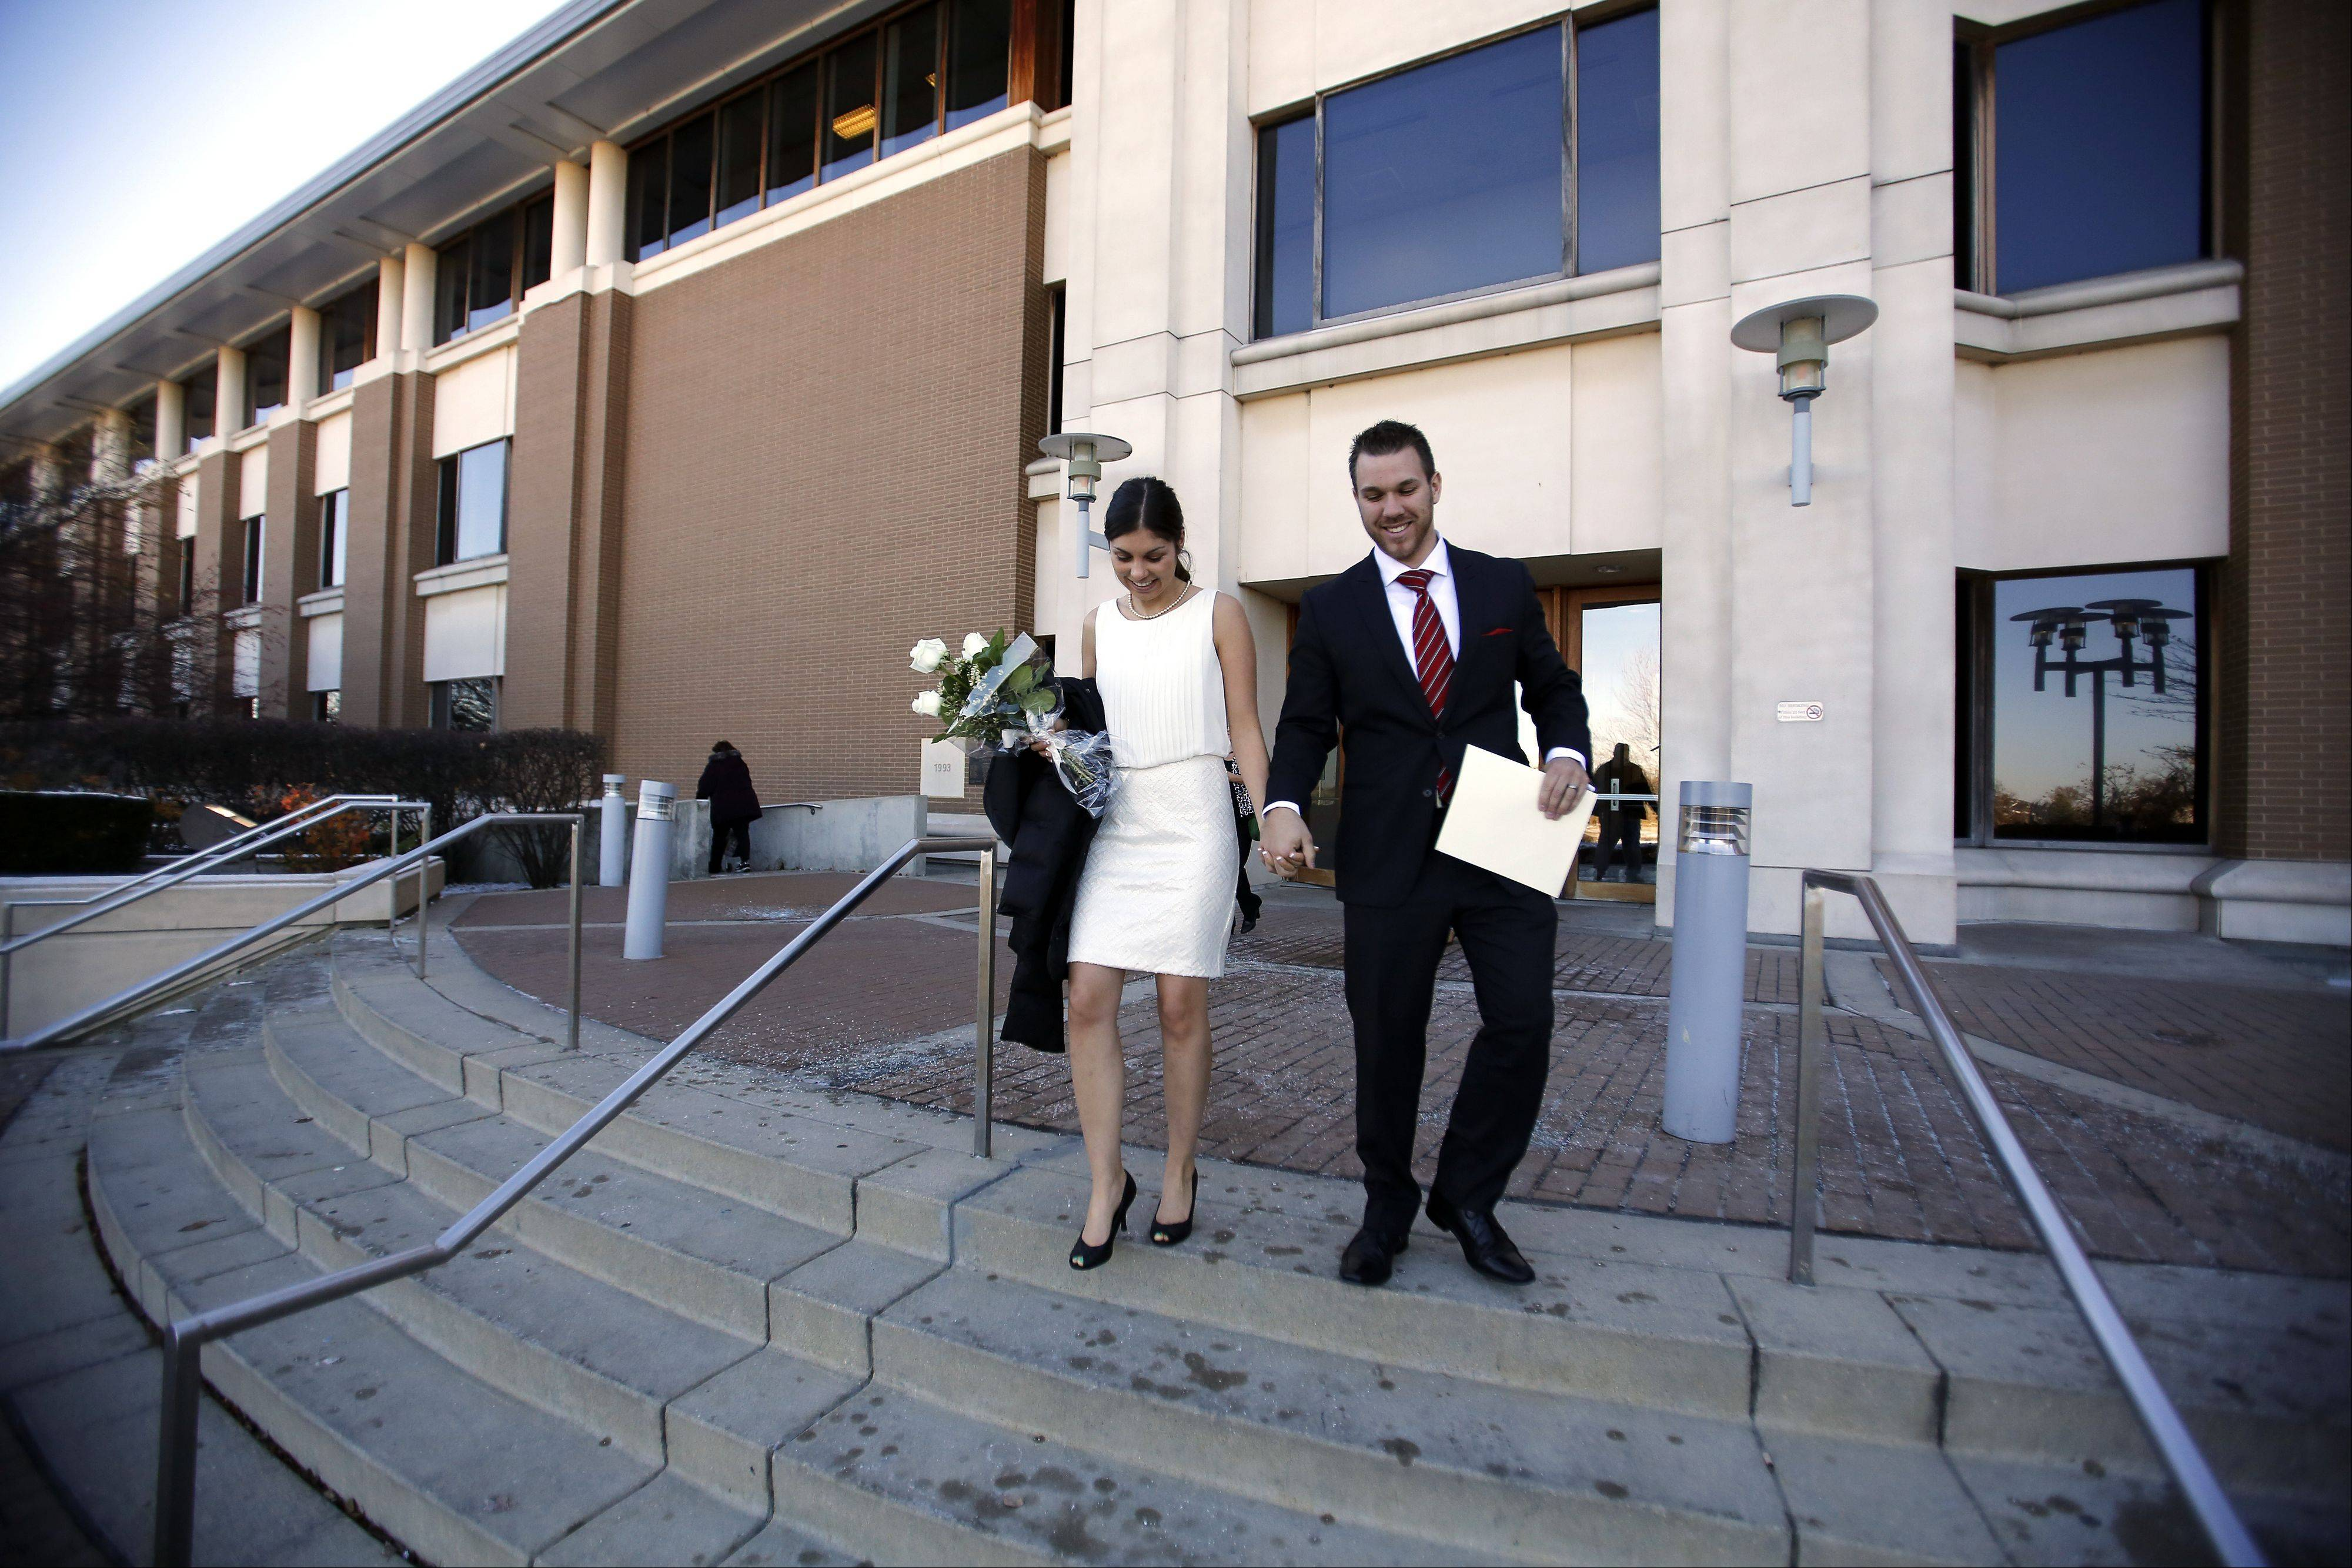 Robert Forrest of Kansas City, Kansas, and his bride Katie Krueger of East Dundee leave the courthouse with their marriage certificate in hand after getting married at the Kane County Courthouse on Tuesday, 11-12-13, in St. Charles.